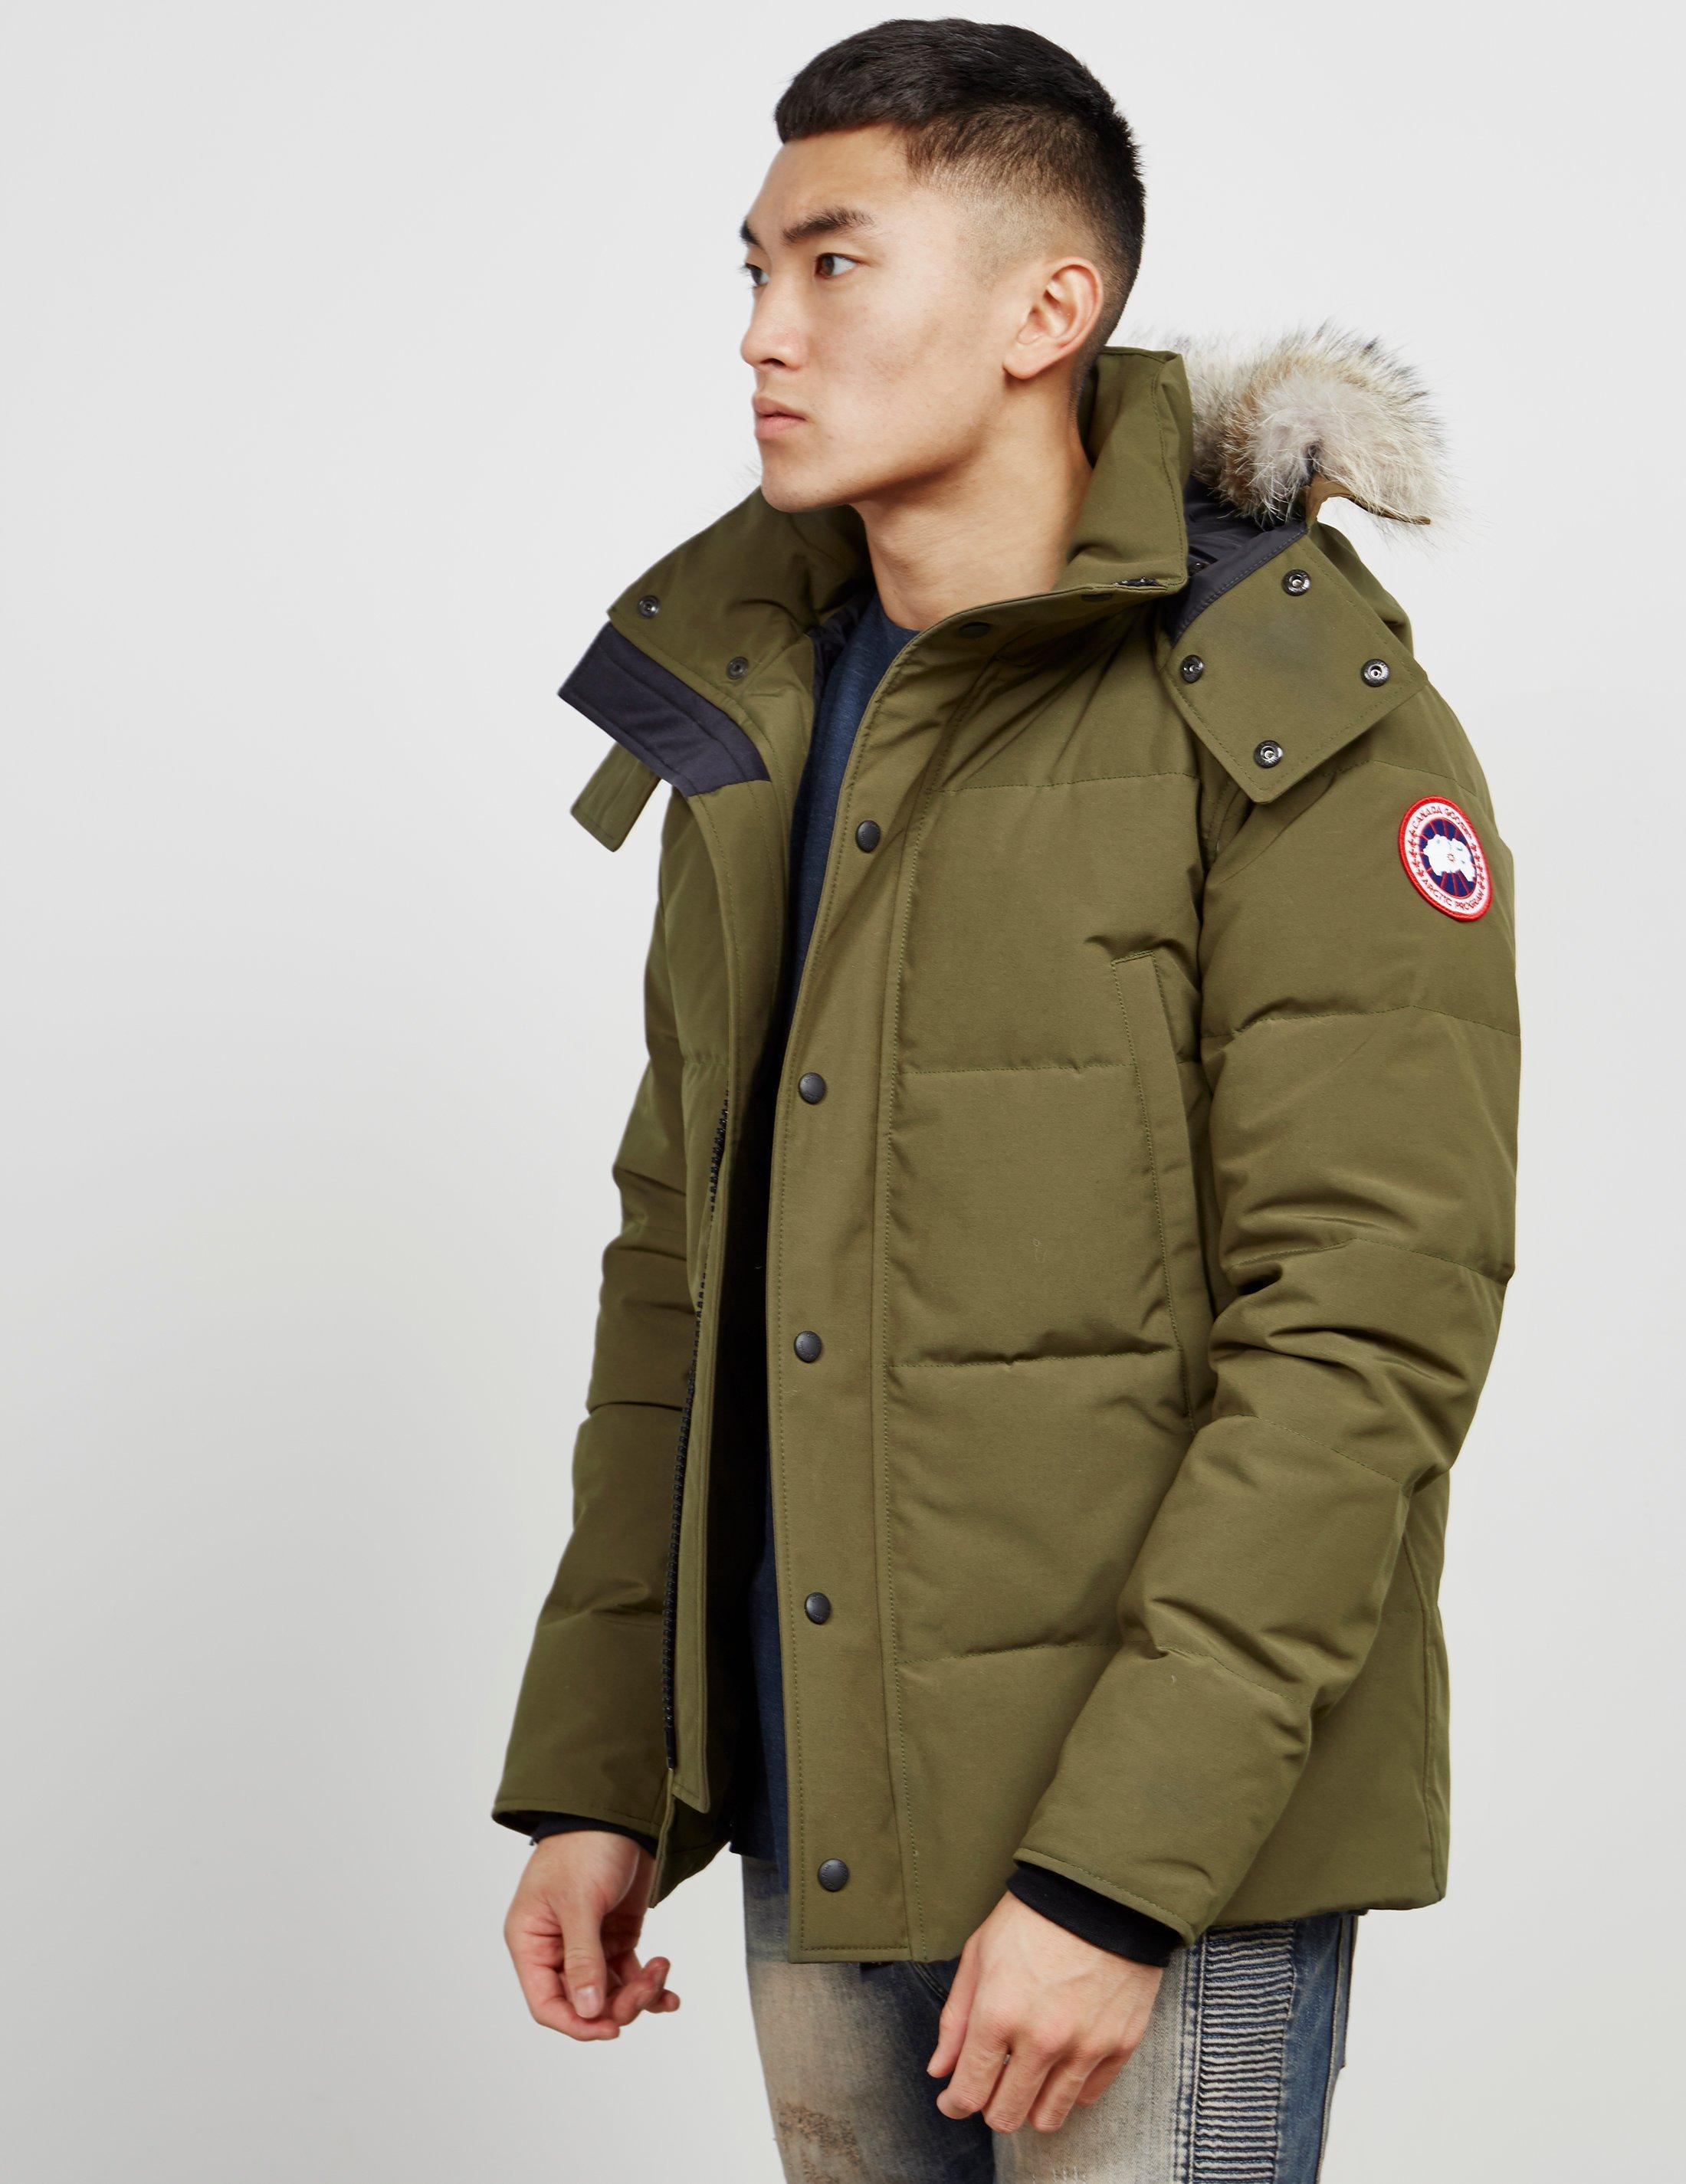 ea8bc2216f5 Lyst - Canada Goose Wyndham Padded Parka Jacket Green in Green for Men